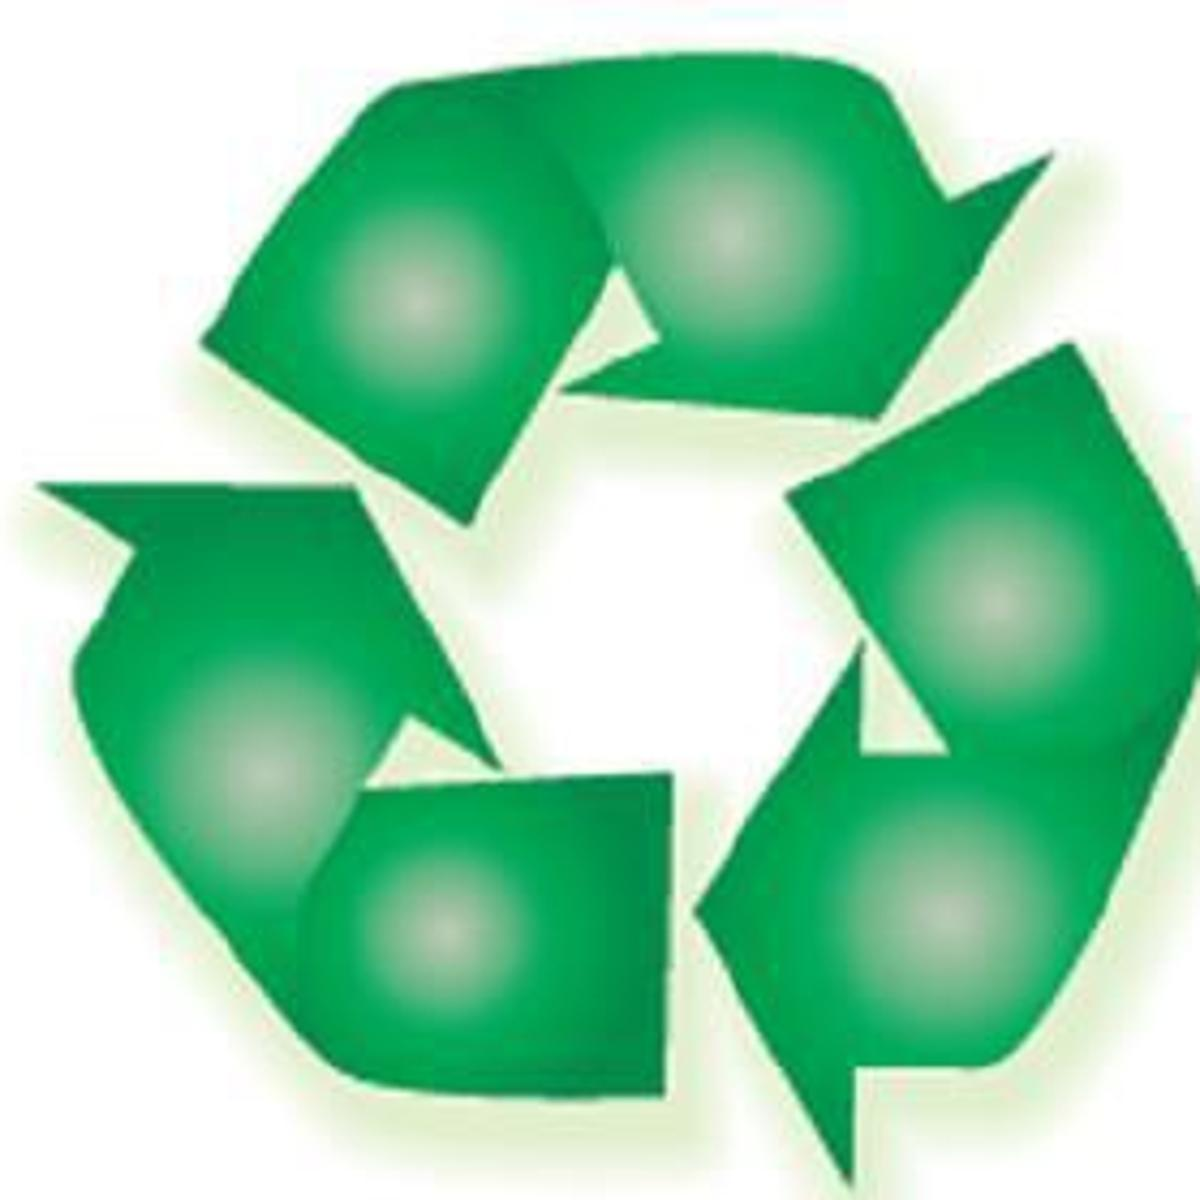 Newsletter clipart recyclable material. Slidell keeps curbside recycling